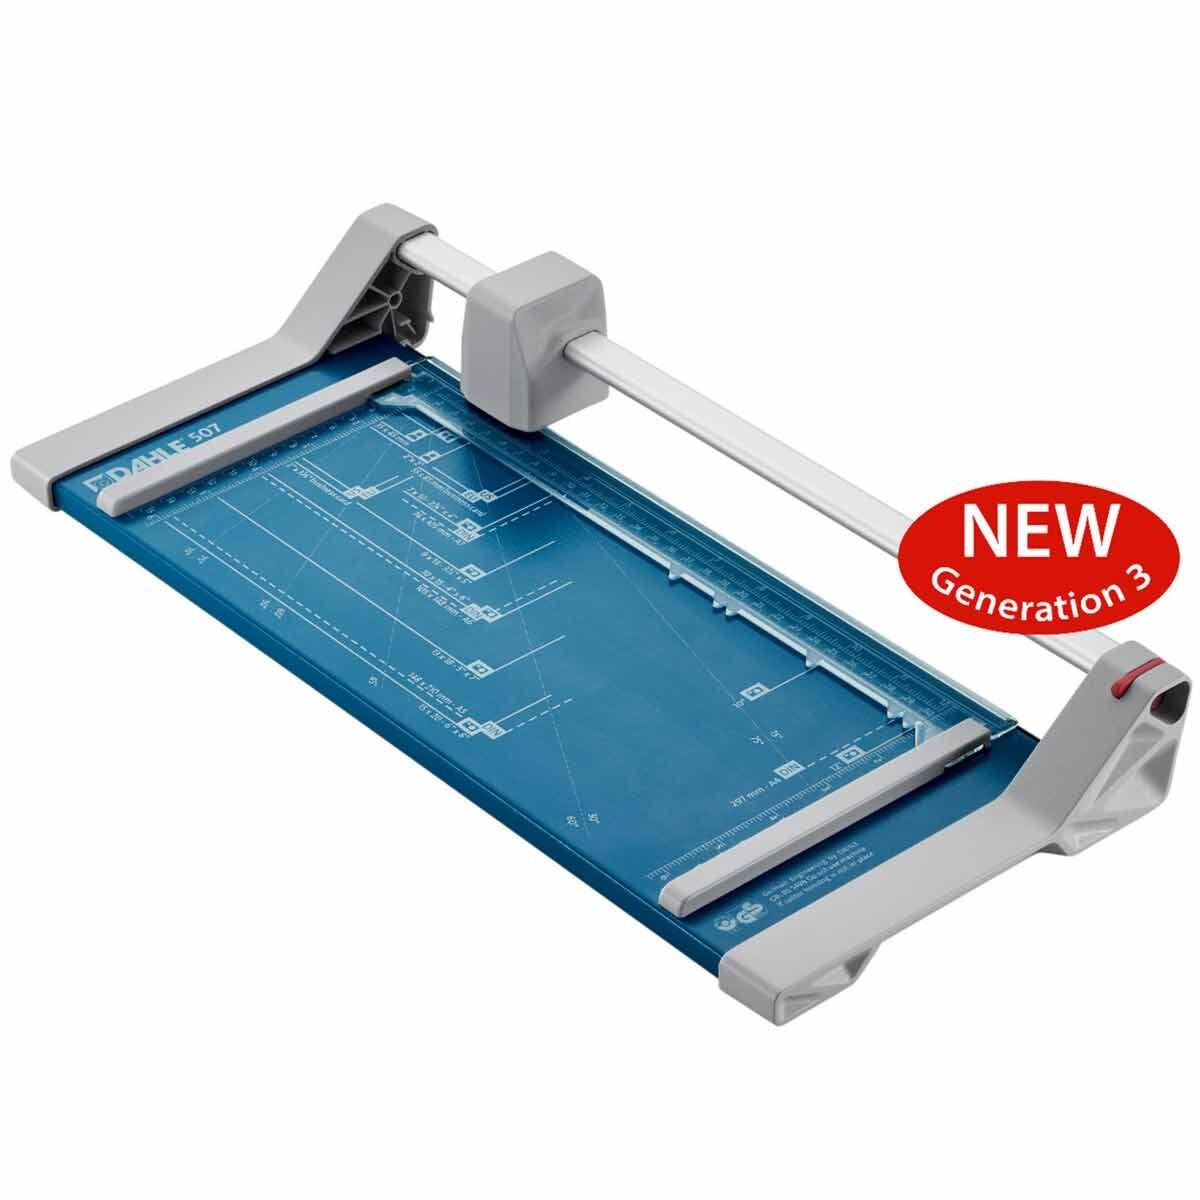 Dahle A4 Personal Trimmer 320mm Cutting Length